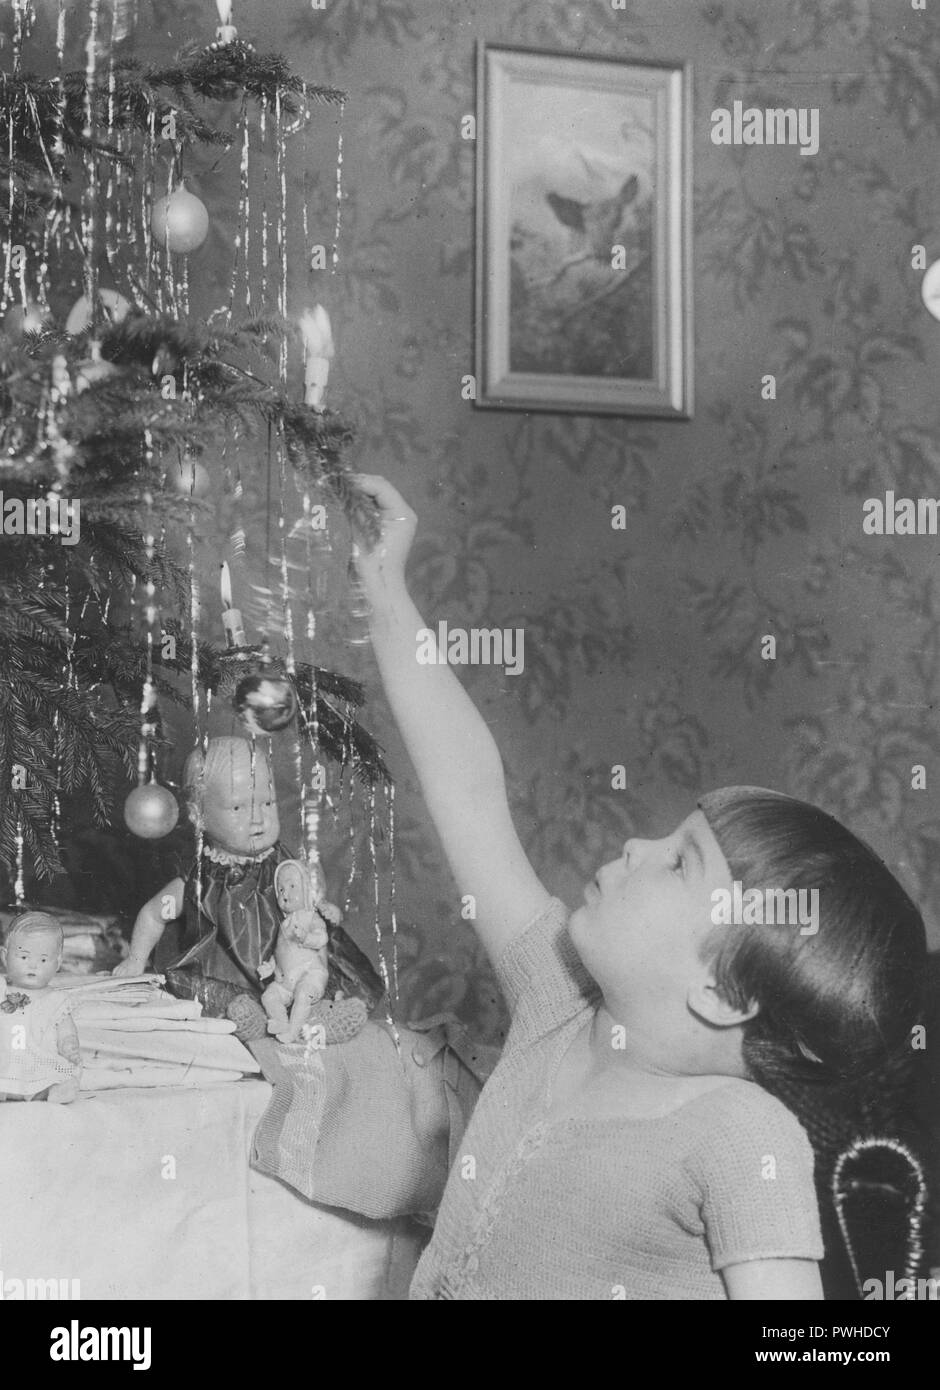 Christmas in the 1920s. A girl is decorating the christmas tree and is lighting a candle in the tree. Sweden 1920s - Stock Image